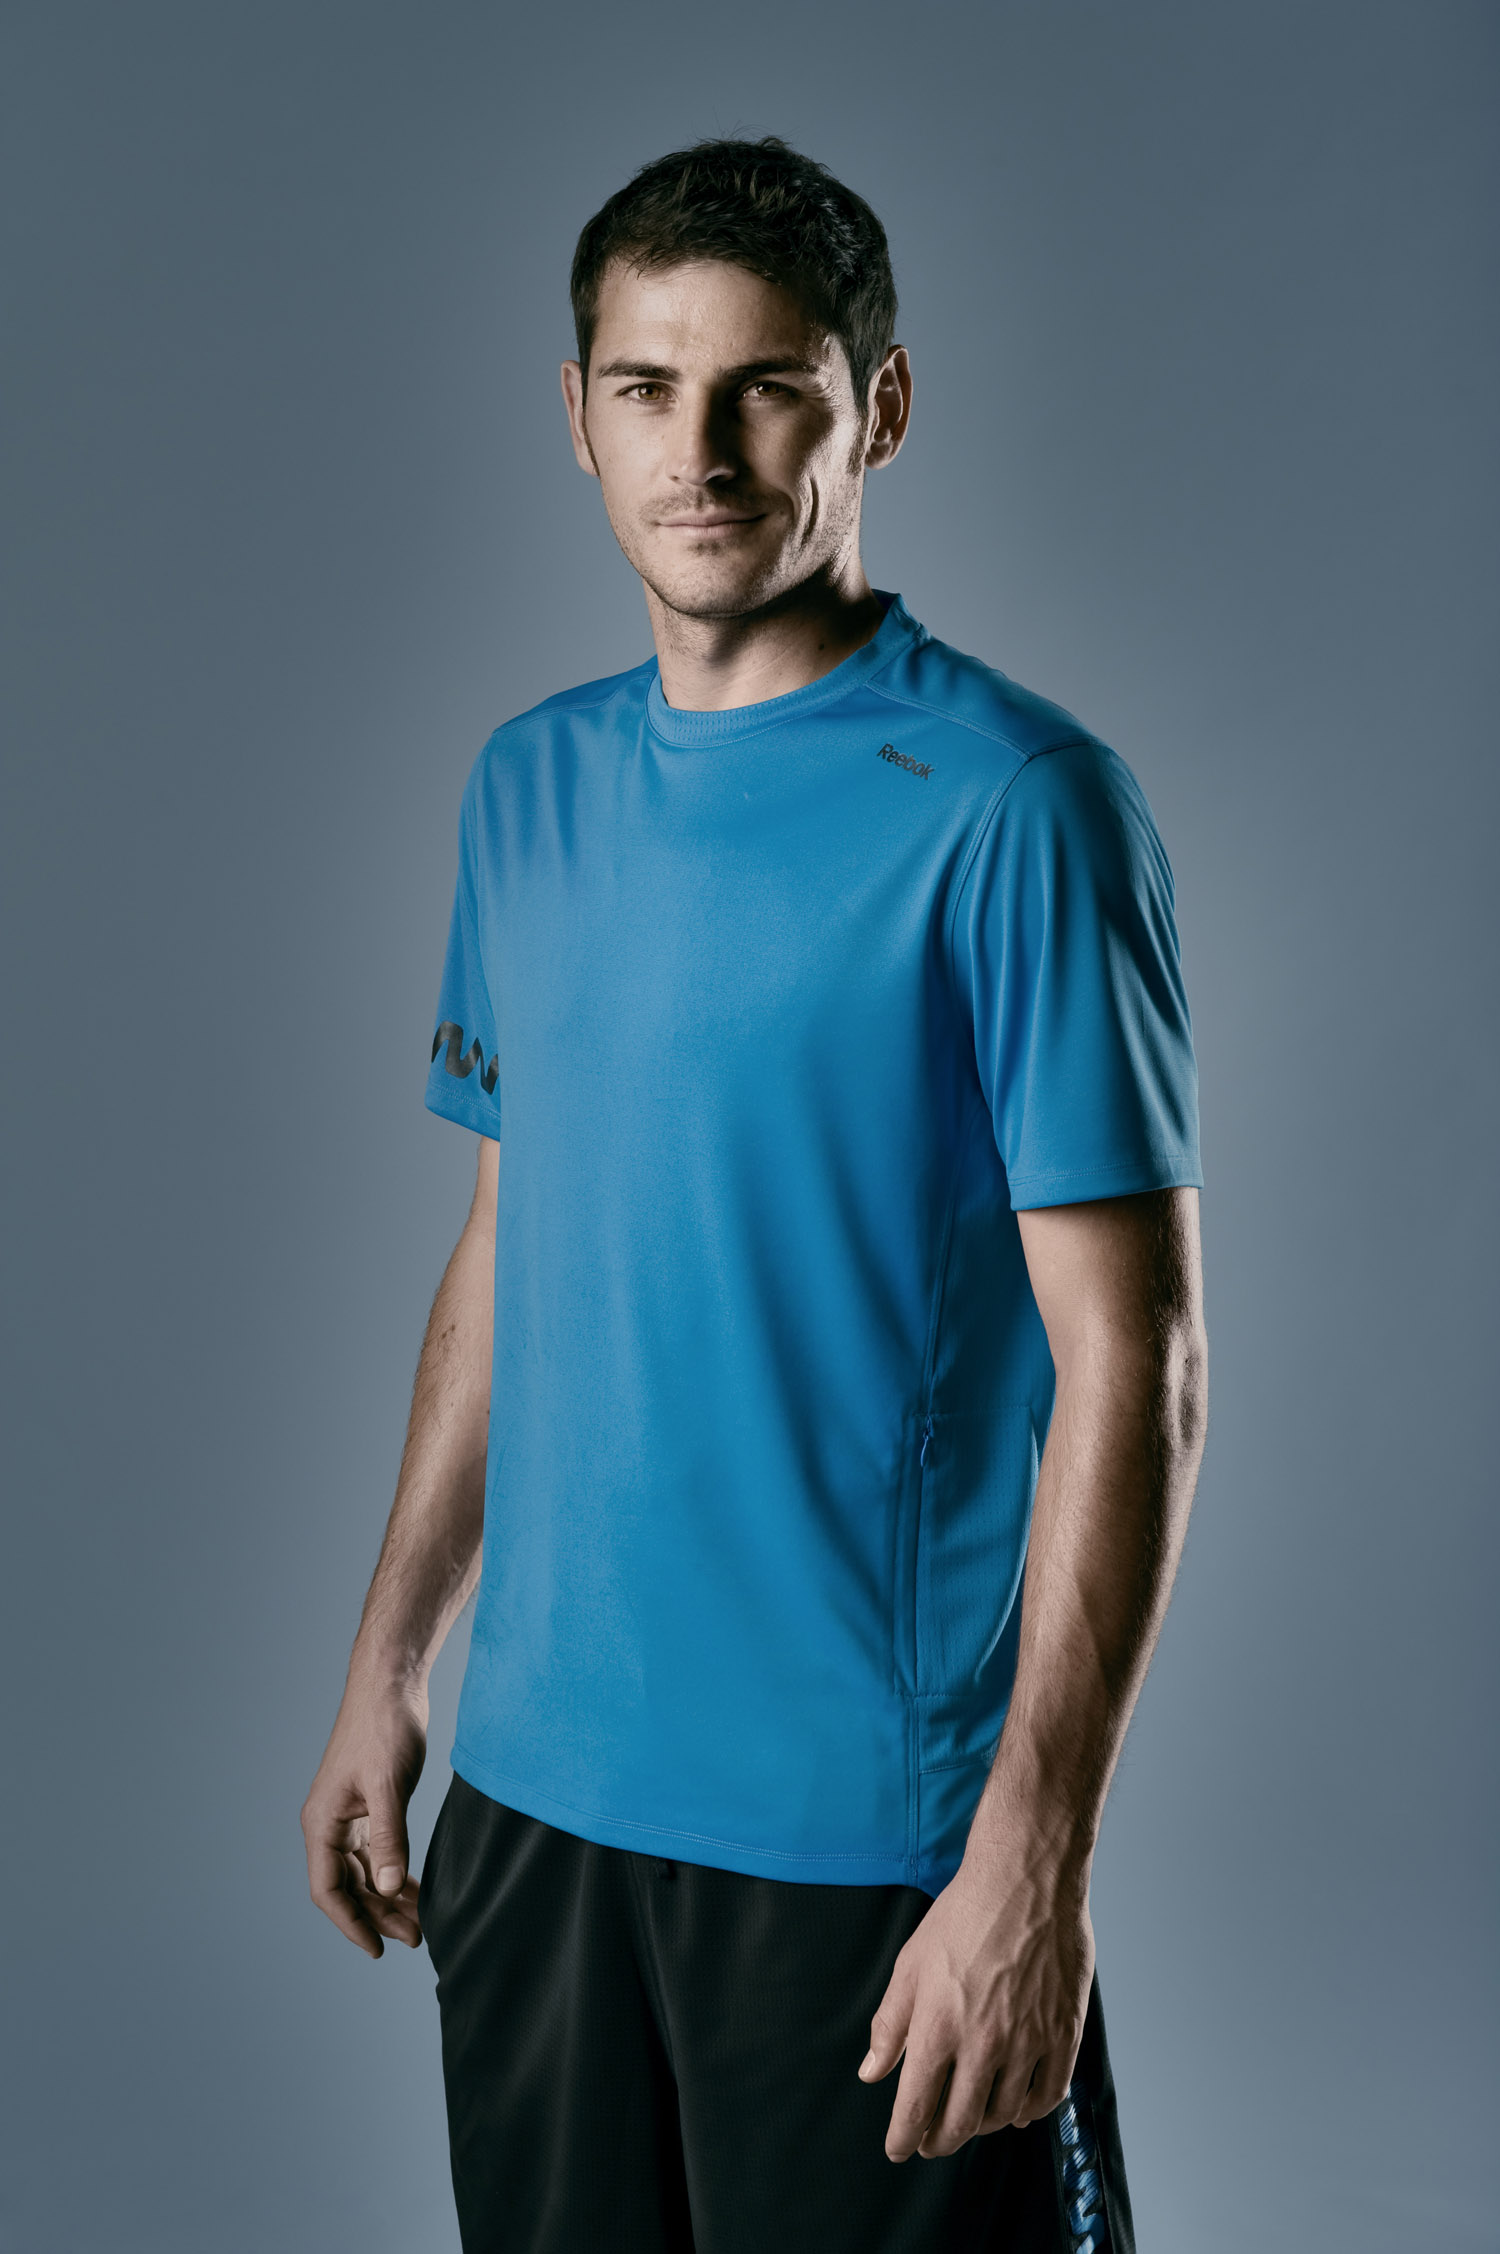 Iker Casillas photo 19 of 80 pics, wallpaper - photo #449225 ...